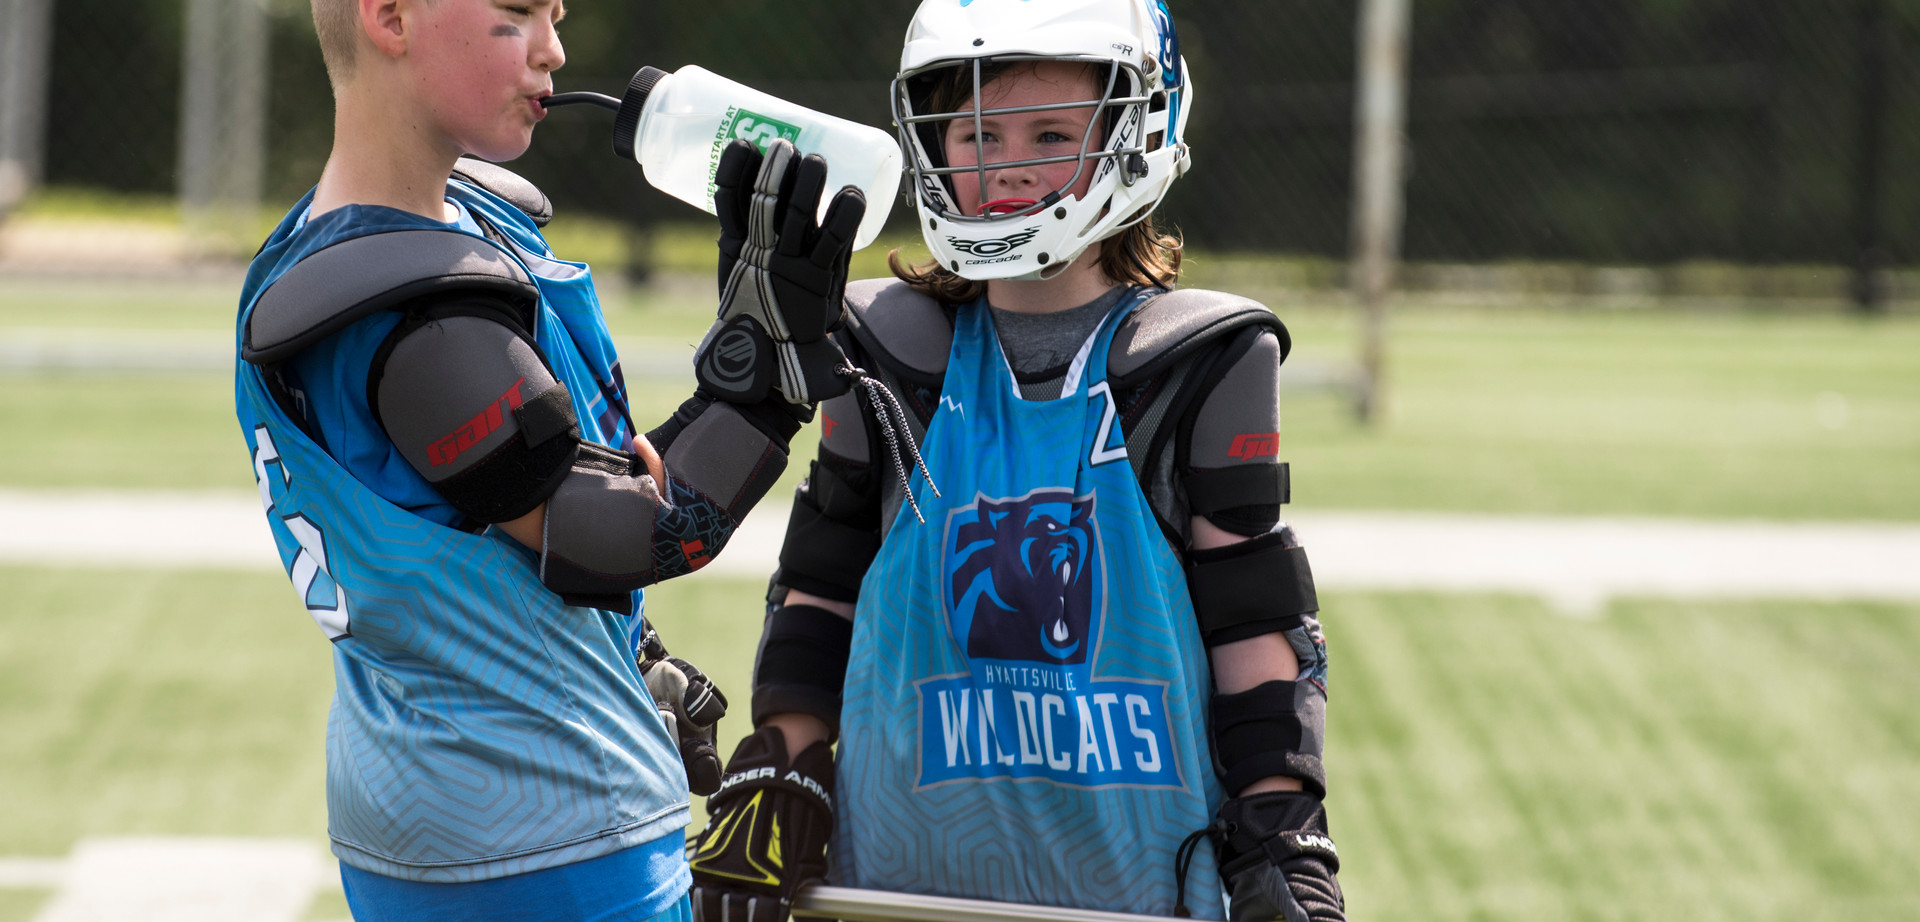 walker-mill-lacrosse-18-07_43132464012_o